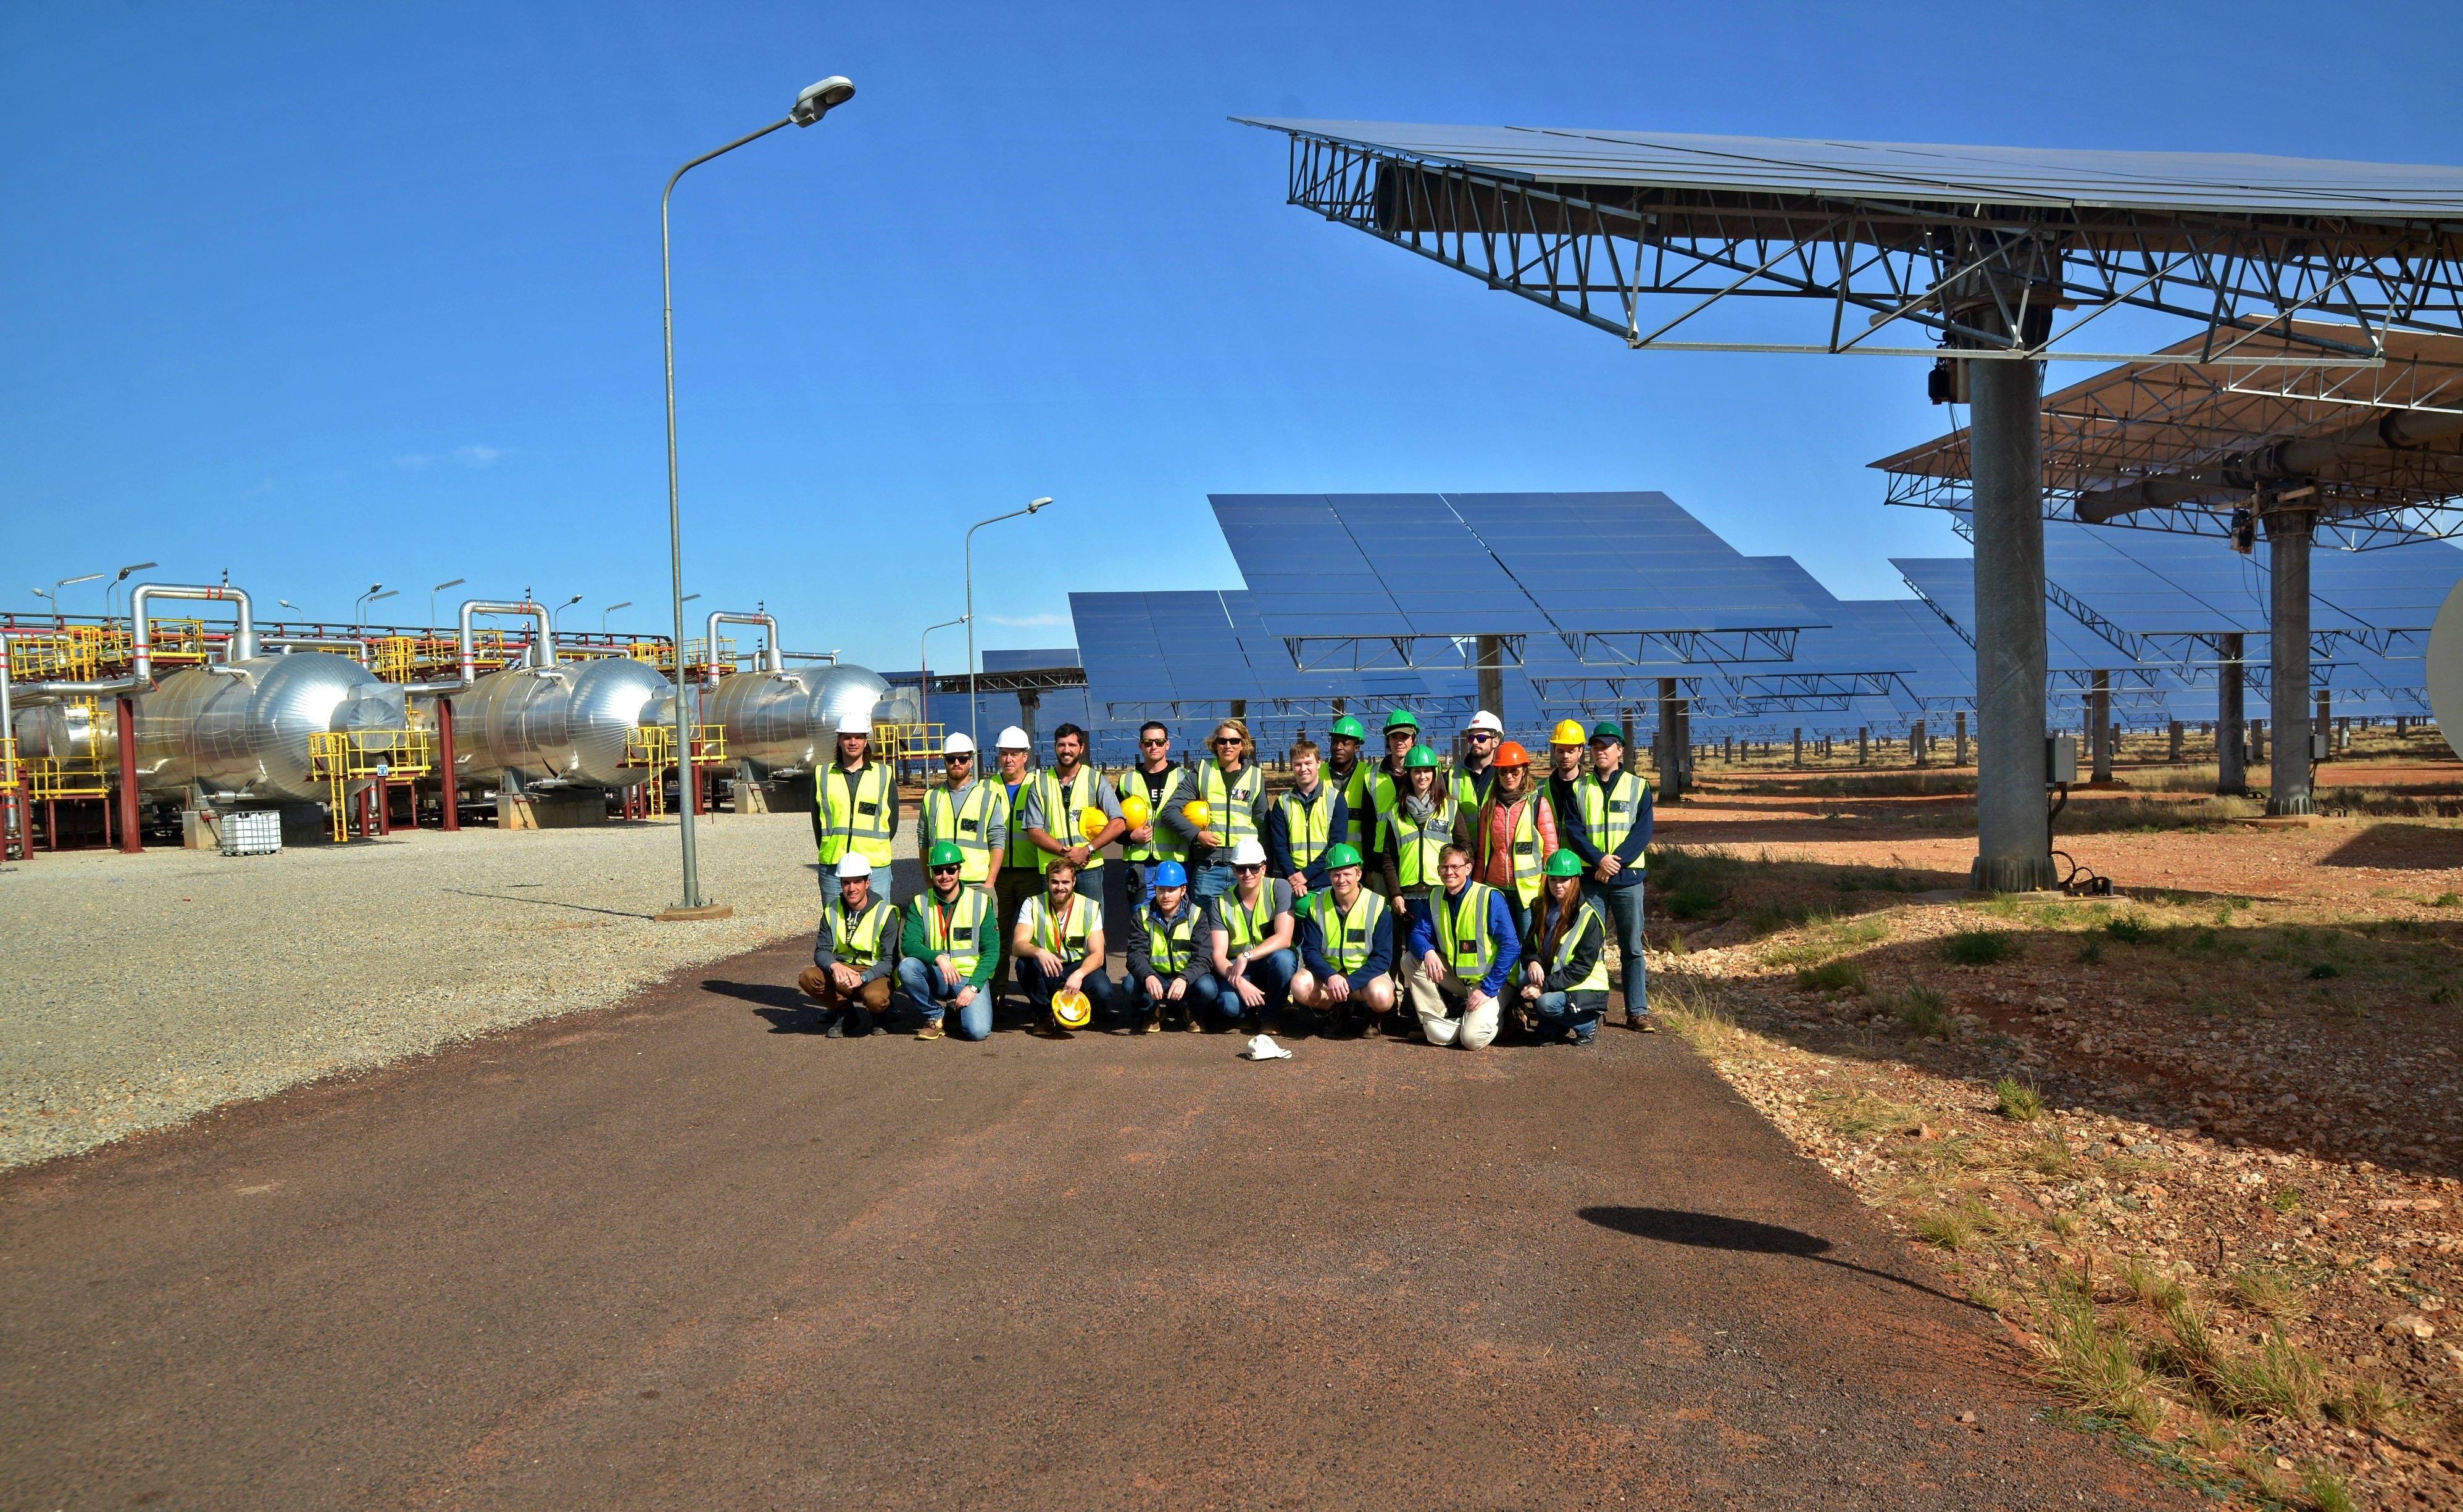 The technical tour team at the Khi Solar Plant. Photo courtesy of Frank Duvenhage